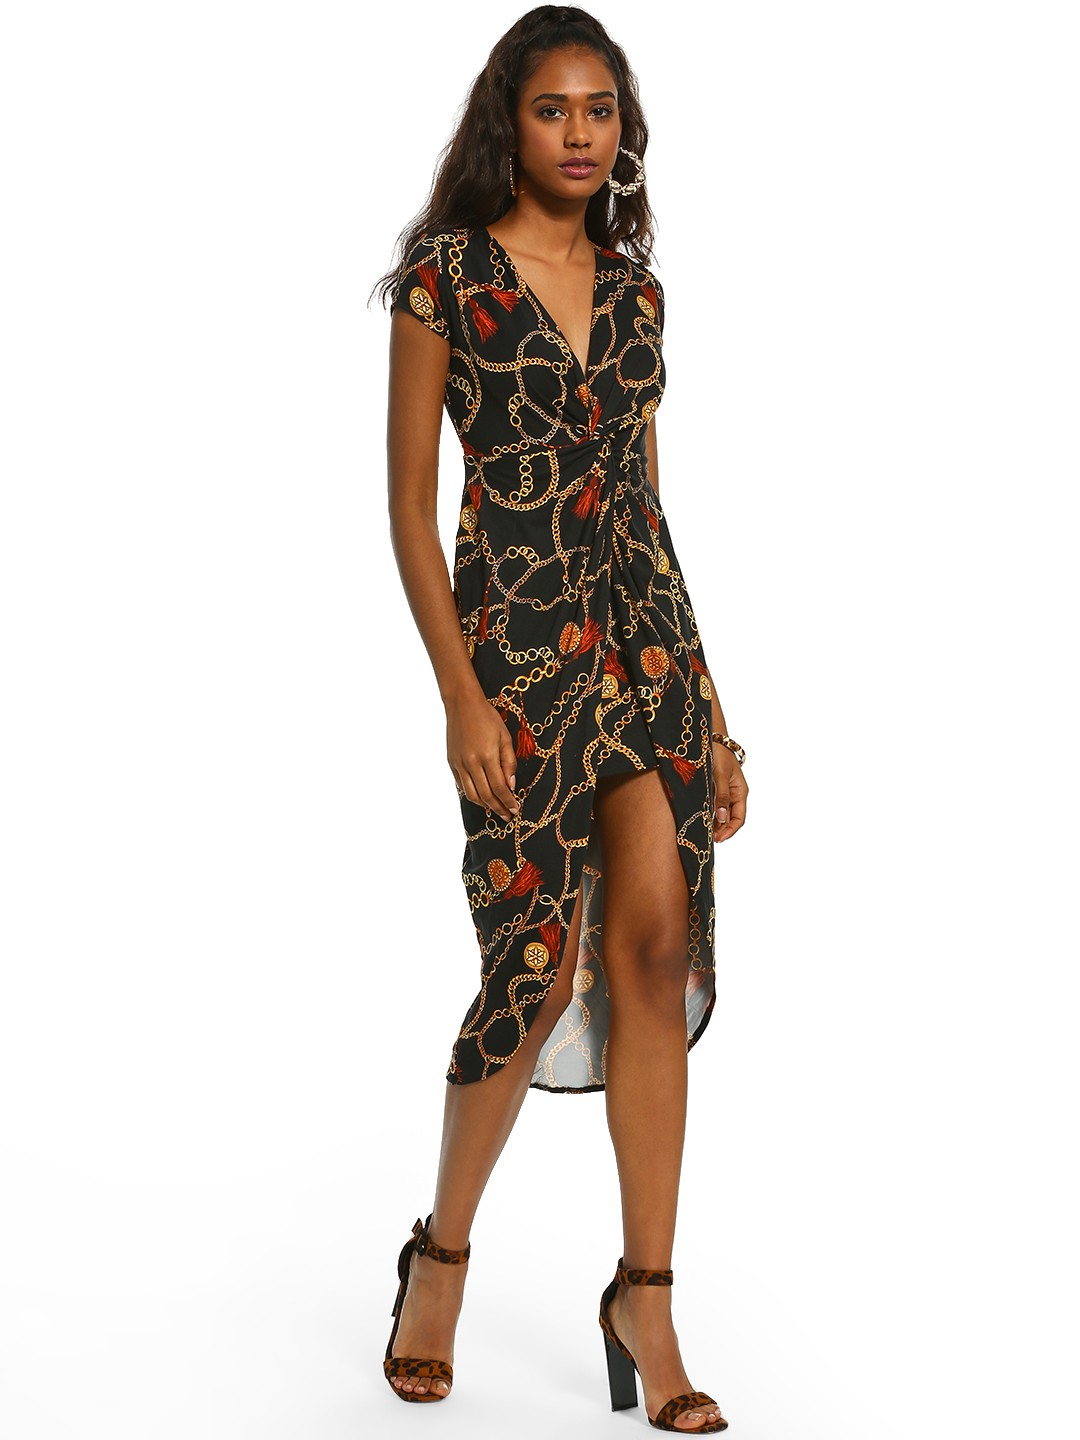 Iris Black Baroque Chain Print Asymmetric Dress 1